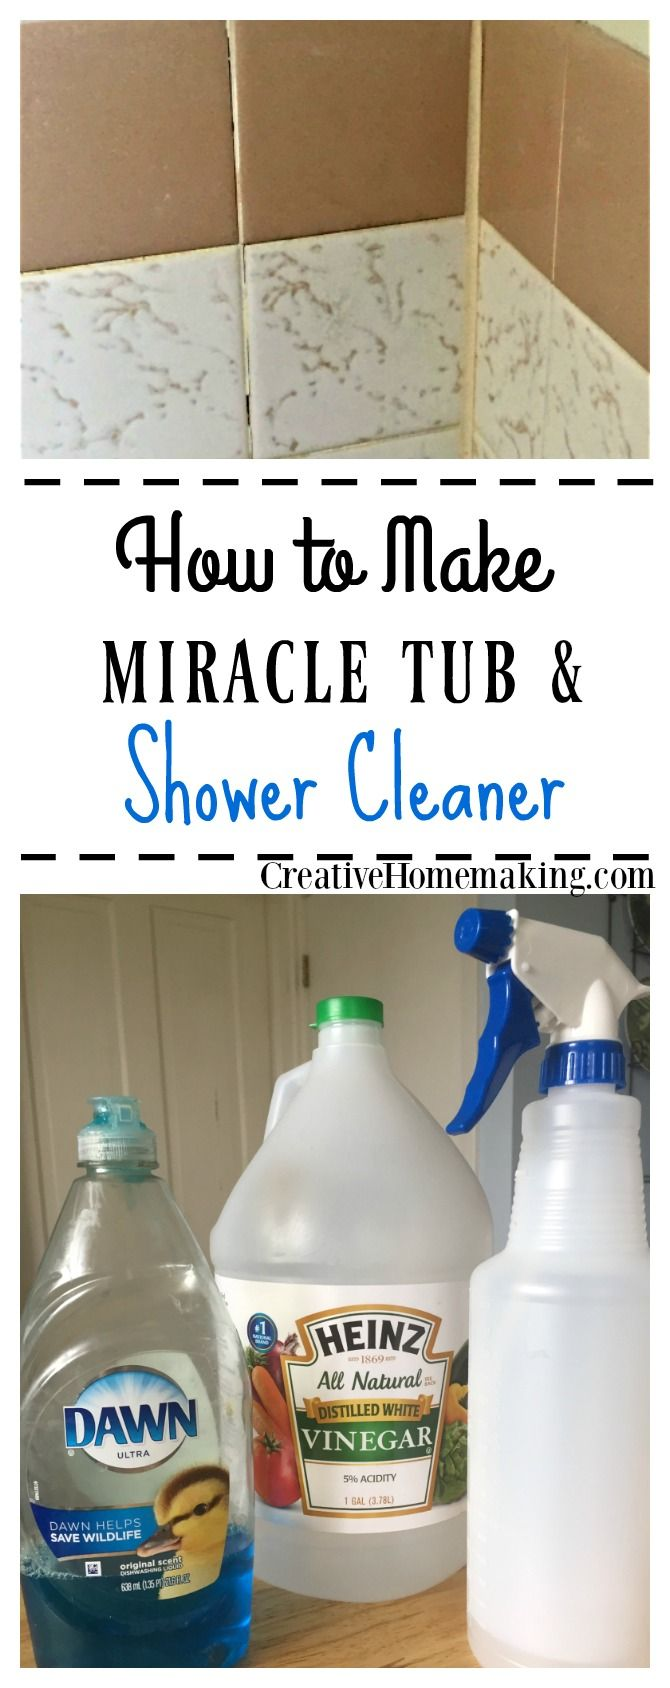 Miracle Tub And Shower Cleaner Cleaning Tips Clean